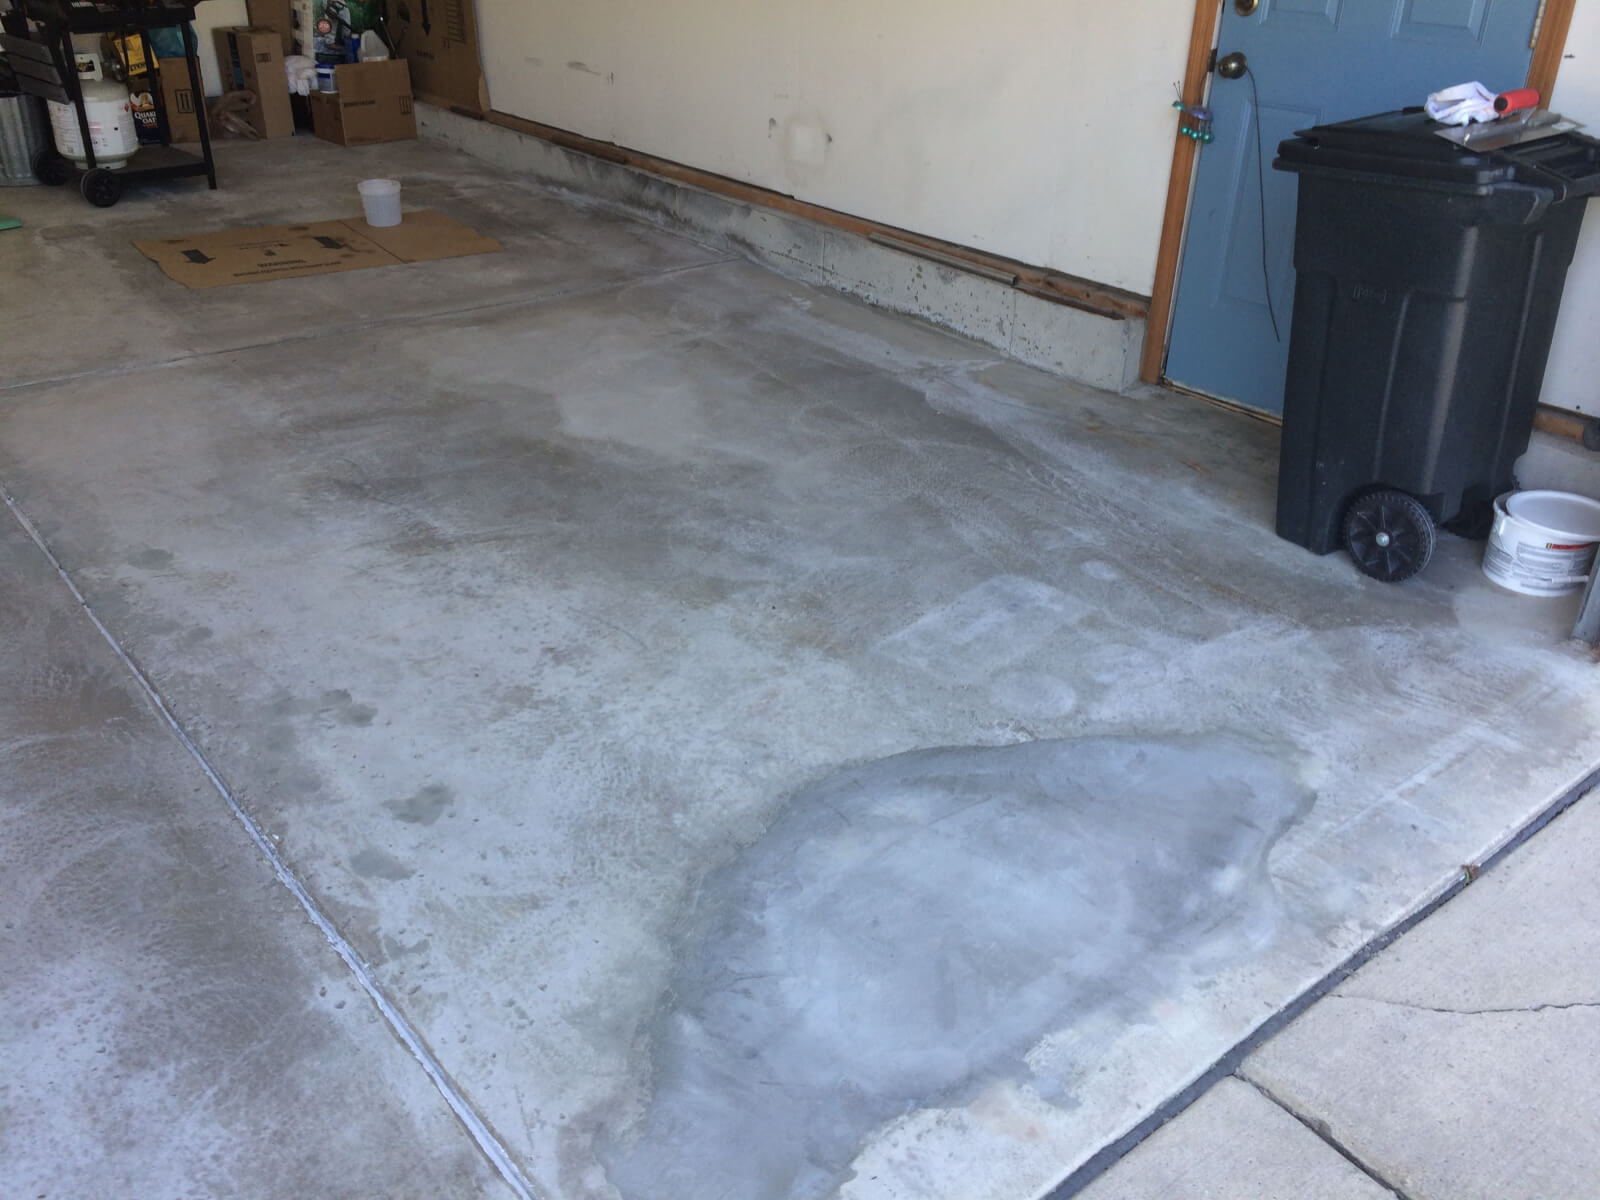 Concrete Garage Floor : Dave s high solids garage floor epoxy coating project